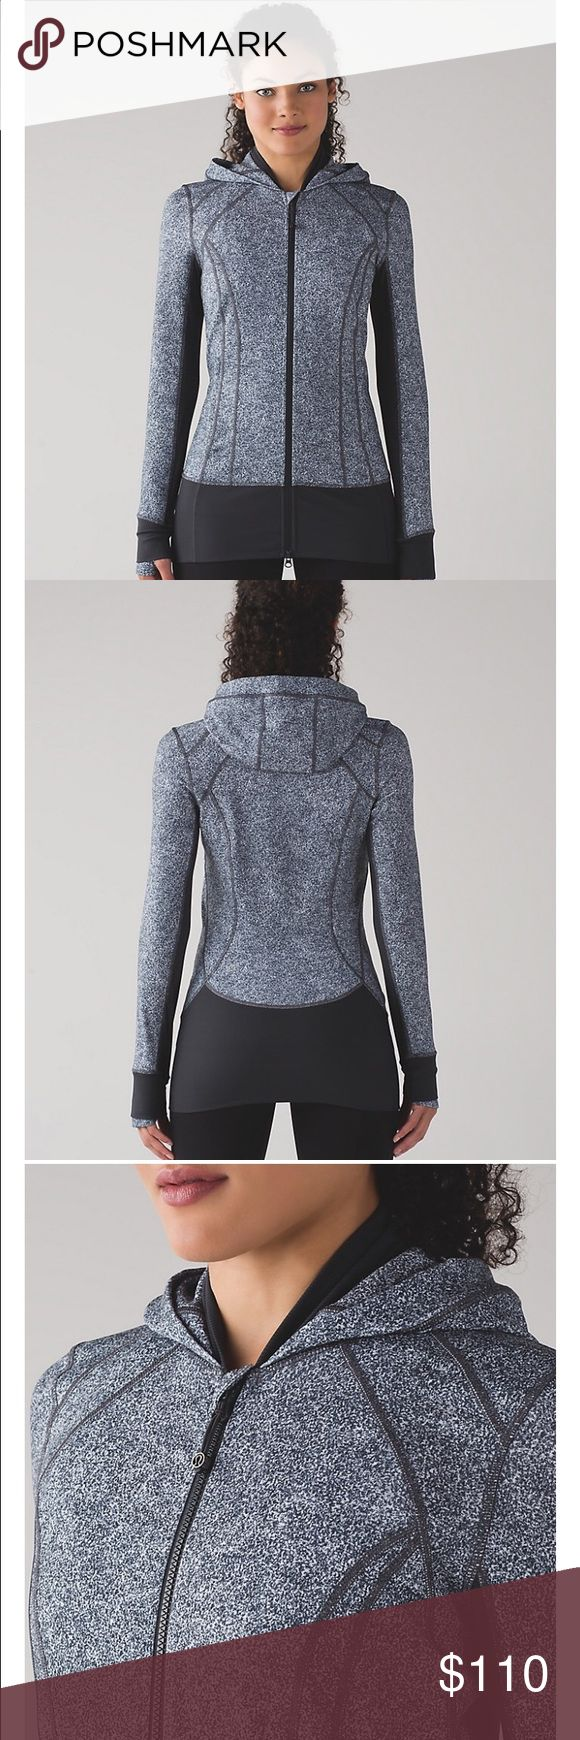 FLASH SALE NWOT Lululemon Daily Practice Jacket brand new without tags. I removed the tag when I tried it on but never worn. Sold out online! lululemon athletica Jackets & Coats